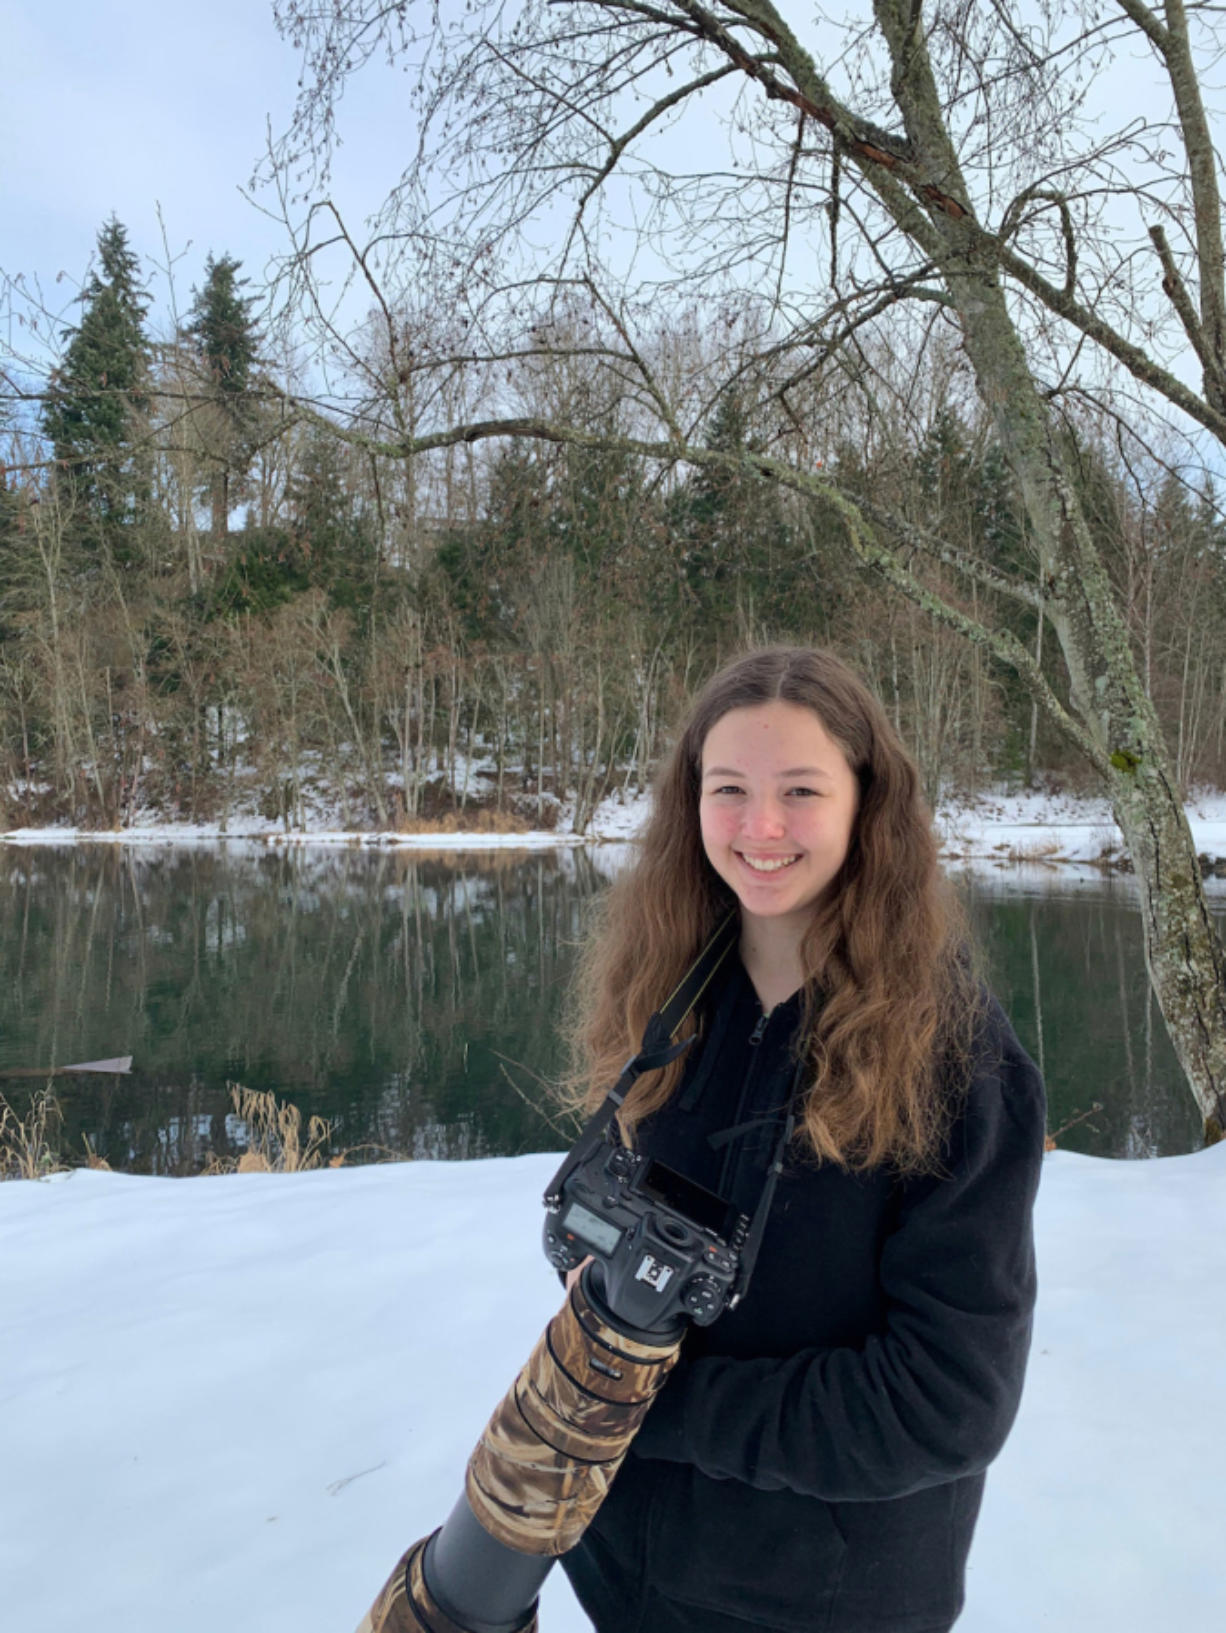 Katie Warner, 13, shown here with her camera near Salmon Creek, was recently named the American Birding Association's 2021 Young Birder of the Year.